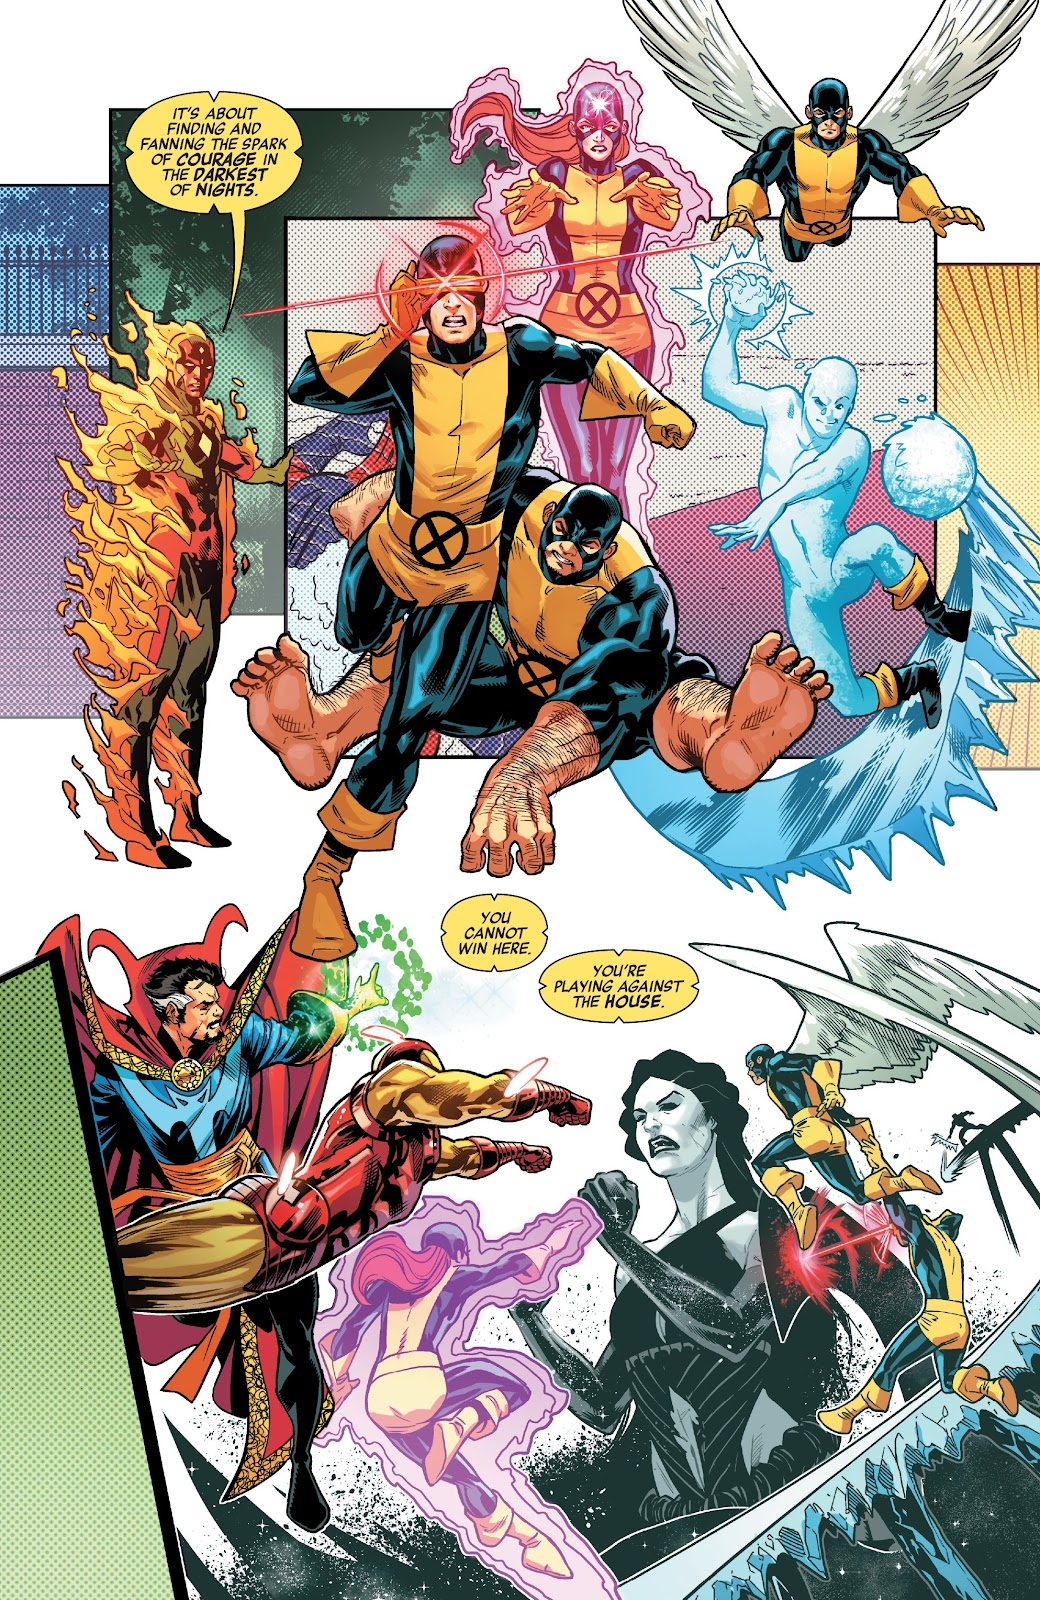 Read online Avengers No Road Home comic -  Issue #10 - 14